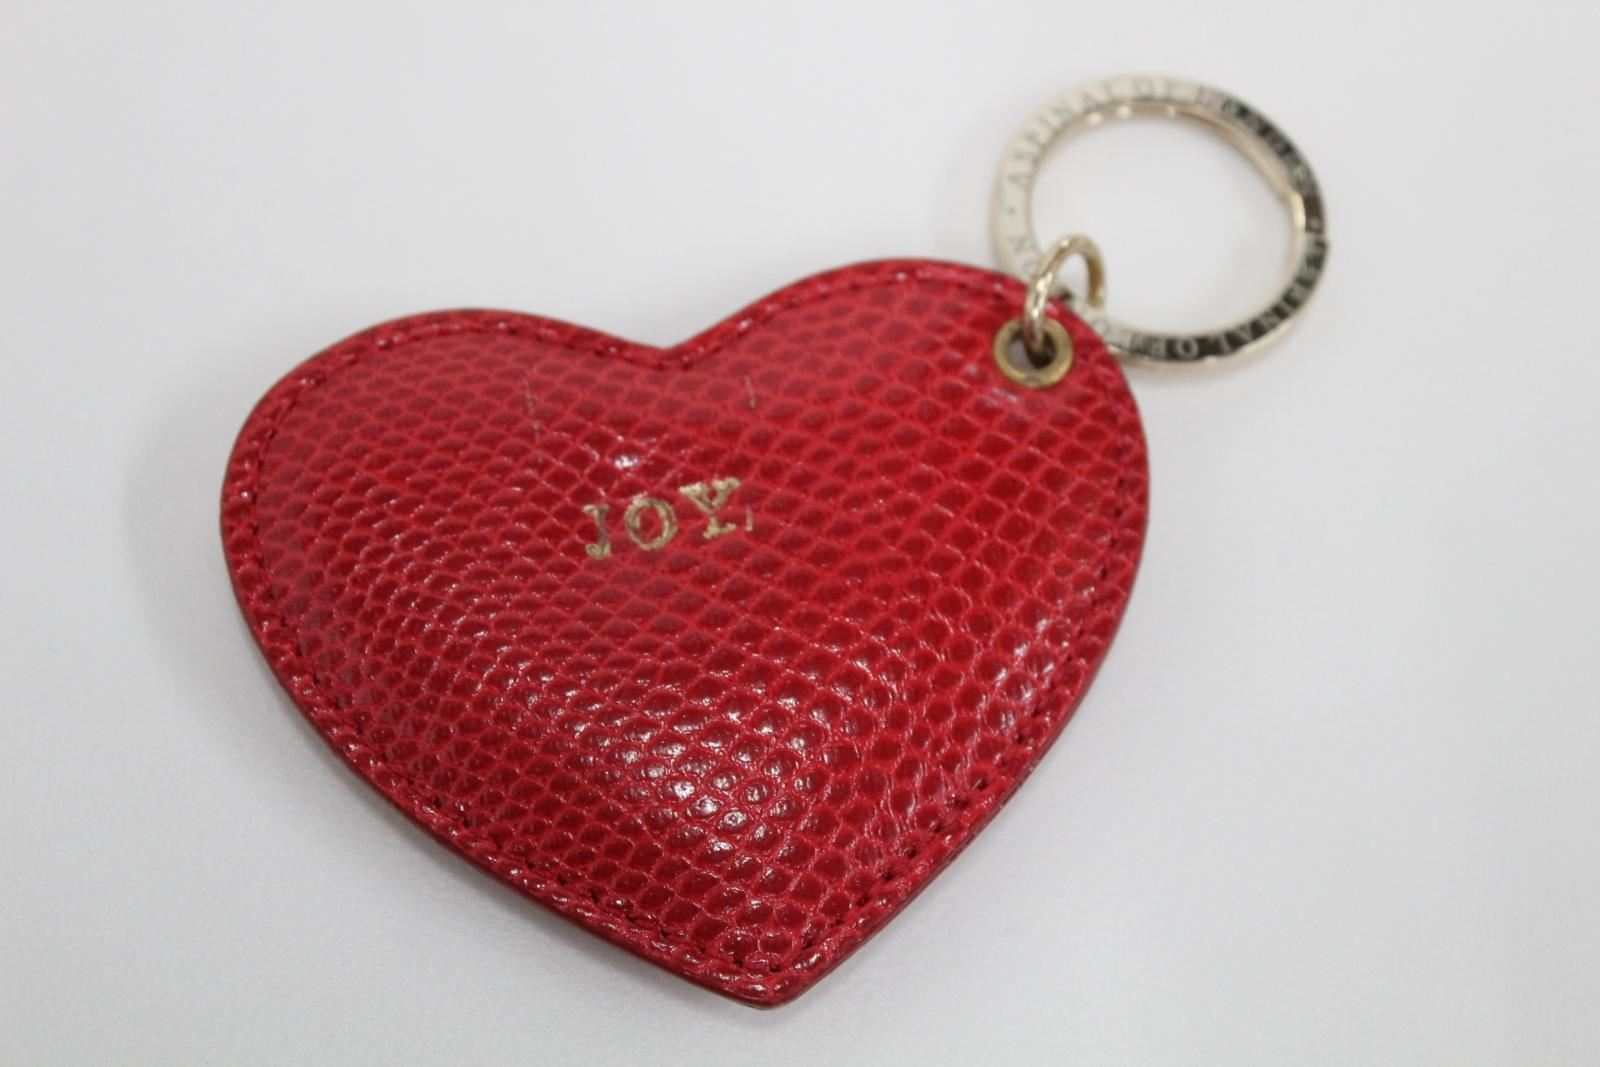 ASPINAL-OF-LONDON-Lizard-Leather-Red-Heart-Soft-Personalised-JOY-Fob-Keyring-NEW